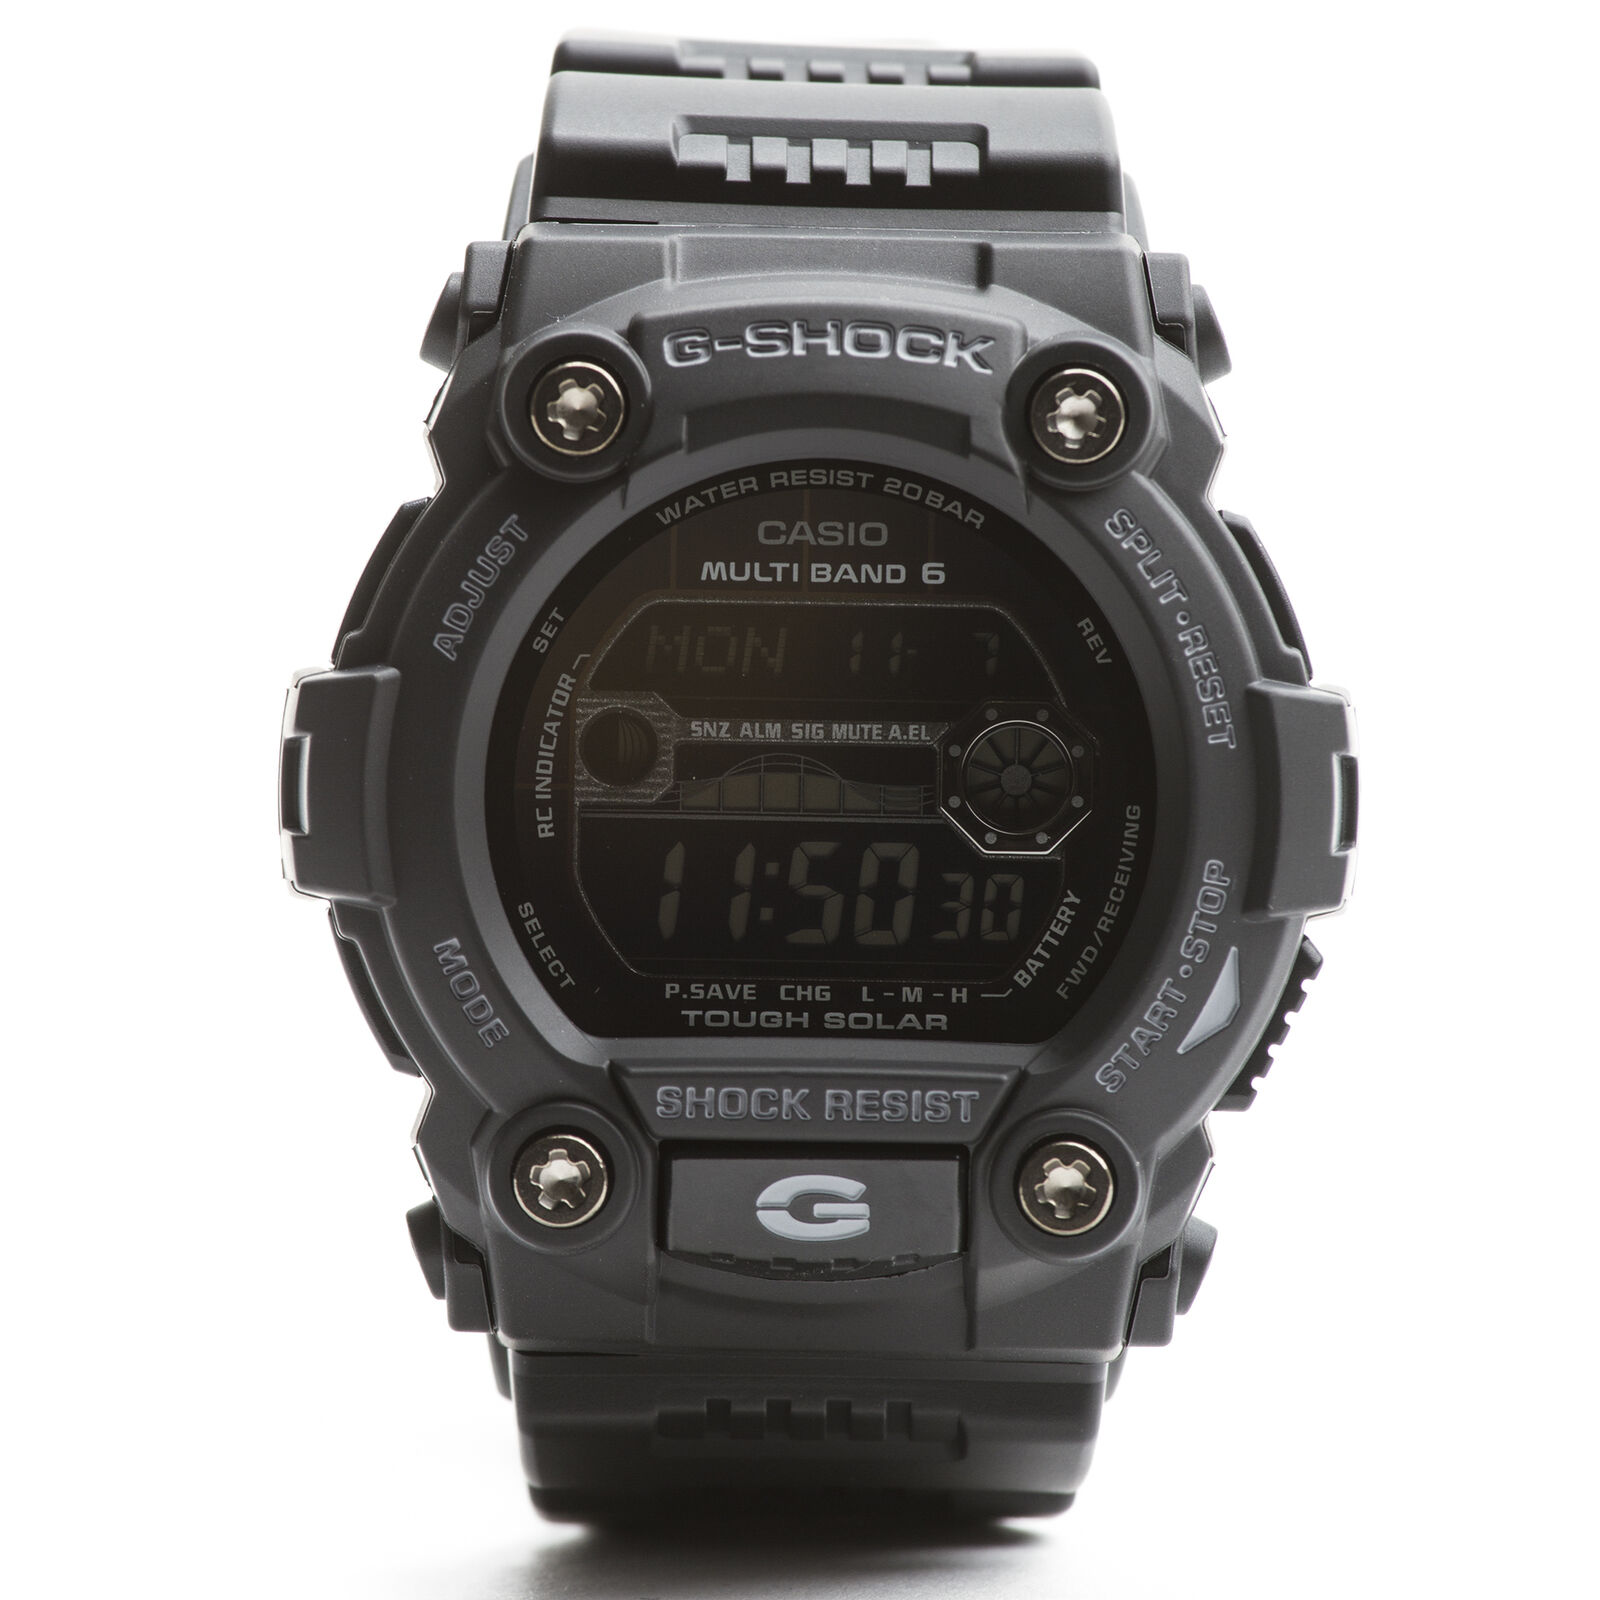 977f02a17d1 Casio G-Shock GW7900B-1 Wrist Watch for Unisex for sale online